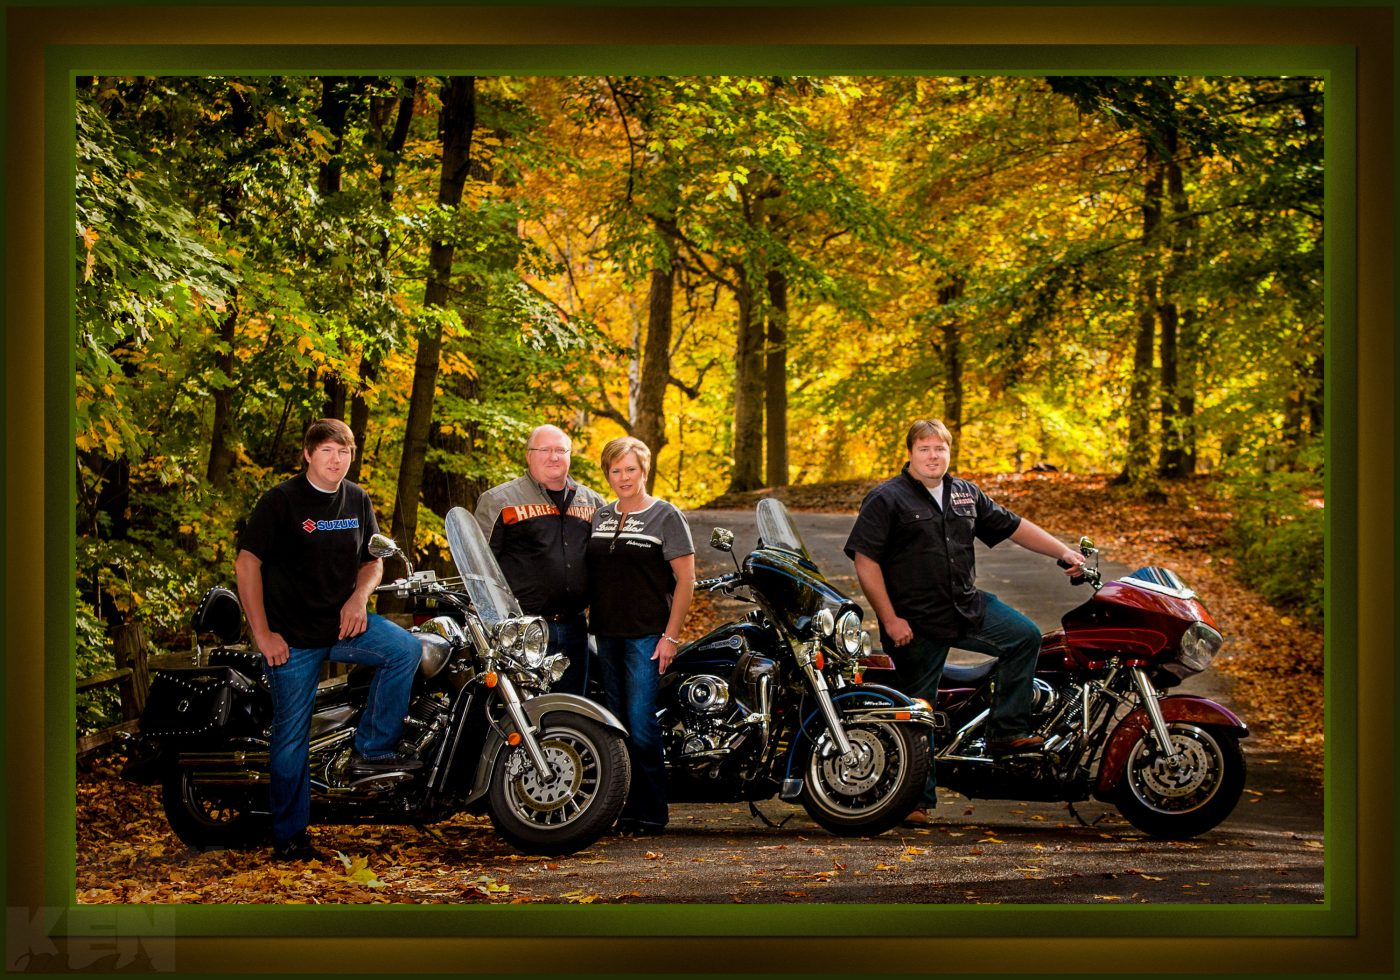 Family on Harley motorcycles in Fall colors